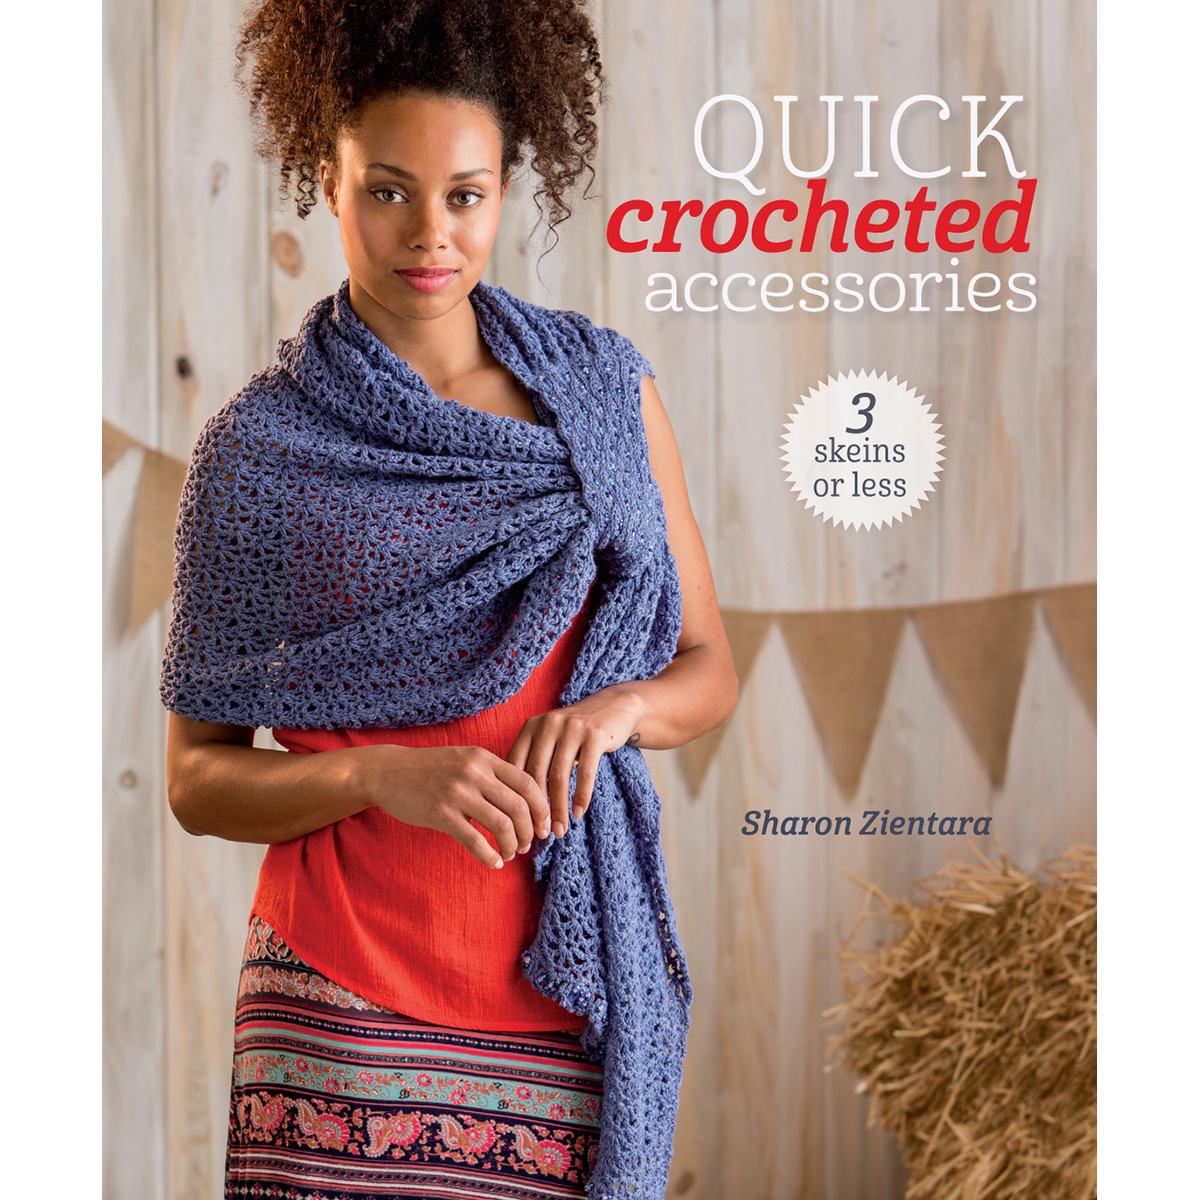 ... Books New Crochet Books ? Interweave Press Quick Crochet Accessories